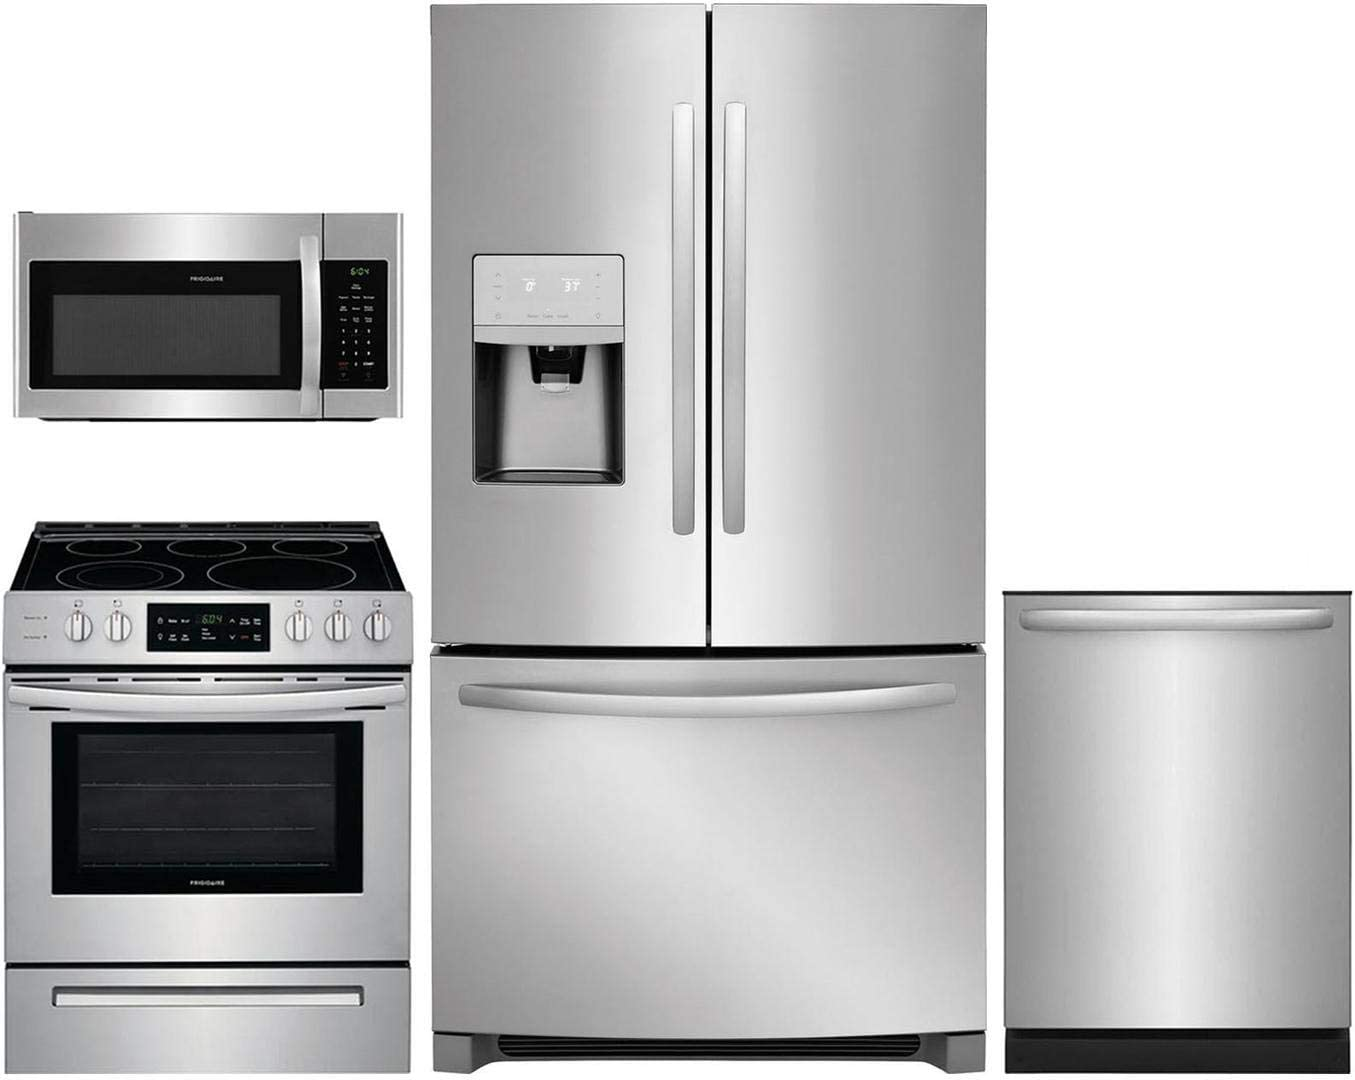 """Frigidaire 4 Piece Kitchen Appliance Package with FFHB2750TS 36"""" French Door Refrigerator FFEH3054US 30"""" Electric Range FFMV1645TS 30"""" Over the Range Microwave and FFID2426TS 24"""" Built In Fully Integrated Dishwasher in Stainless Steel"""